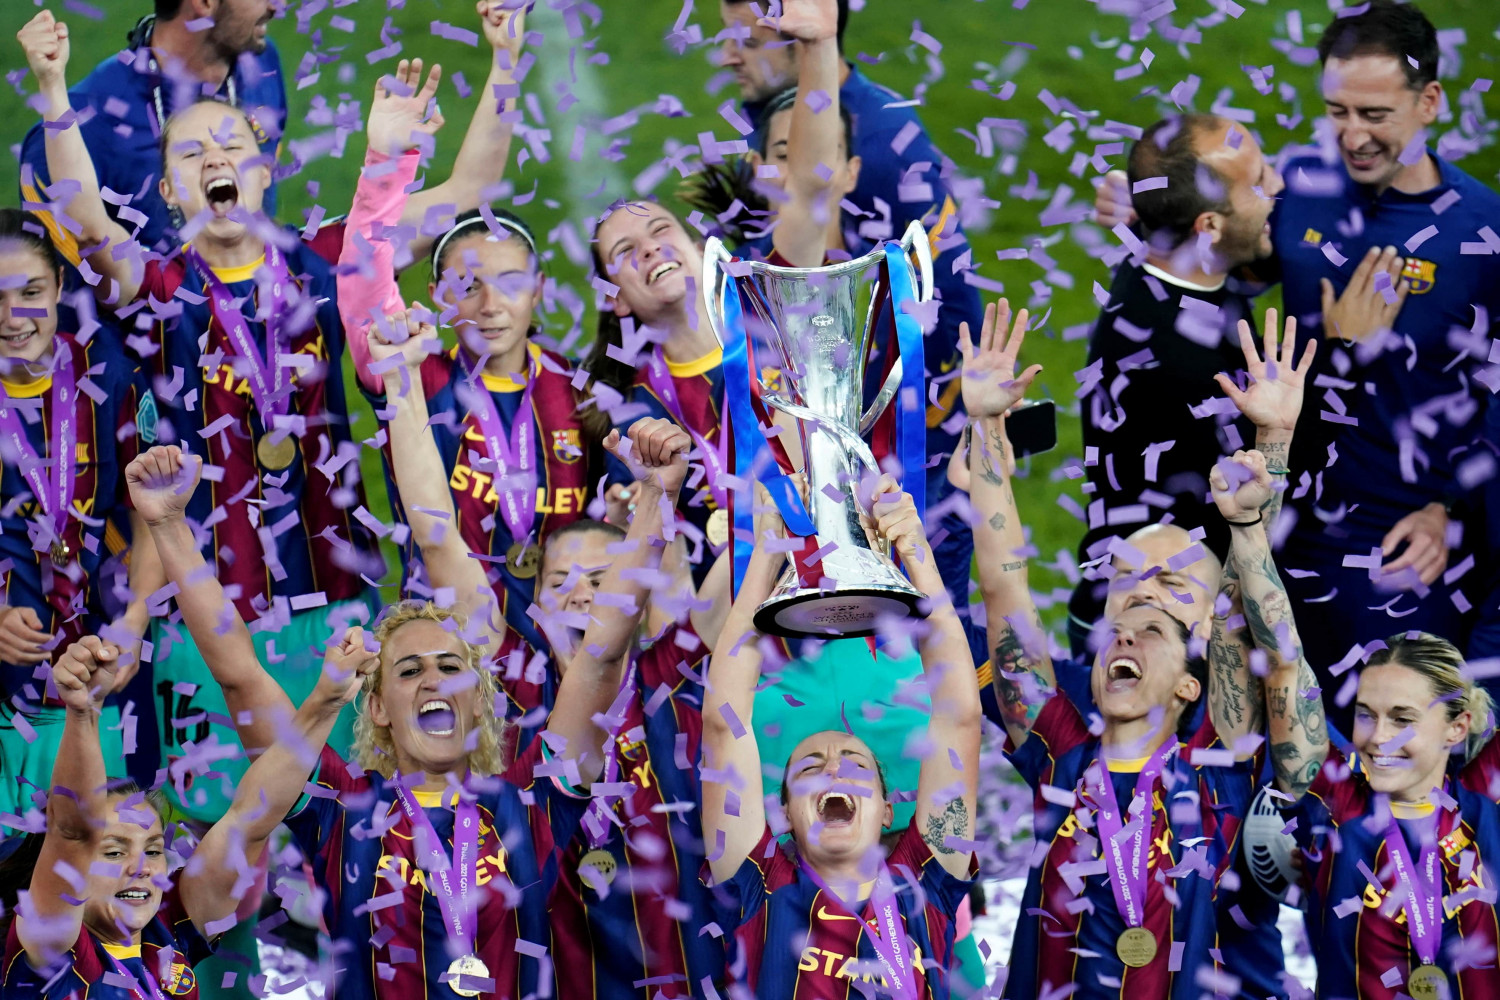 FC Barcelona players lift their first Women's Champions League trophy after defeating Chelsea in the final (by  Bjorn Larsson Rosvall/TT News Agency/Reuters)